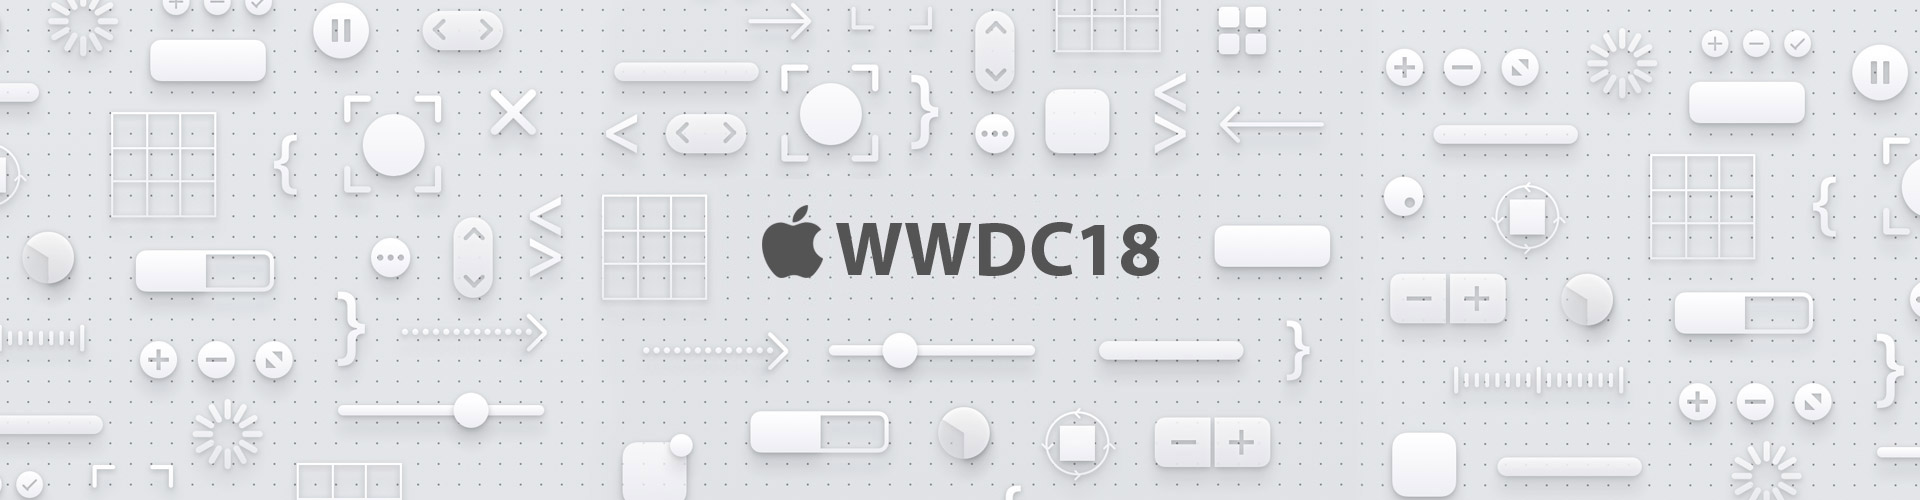 Apple's 2018 WWDC – What's New in iOS12?